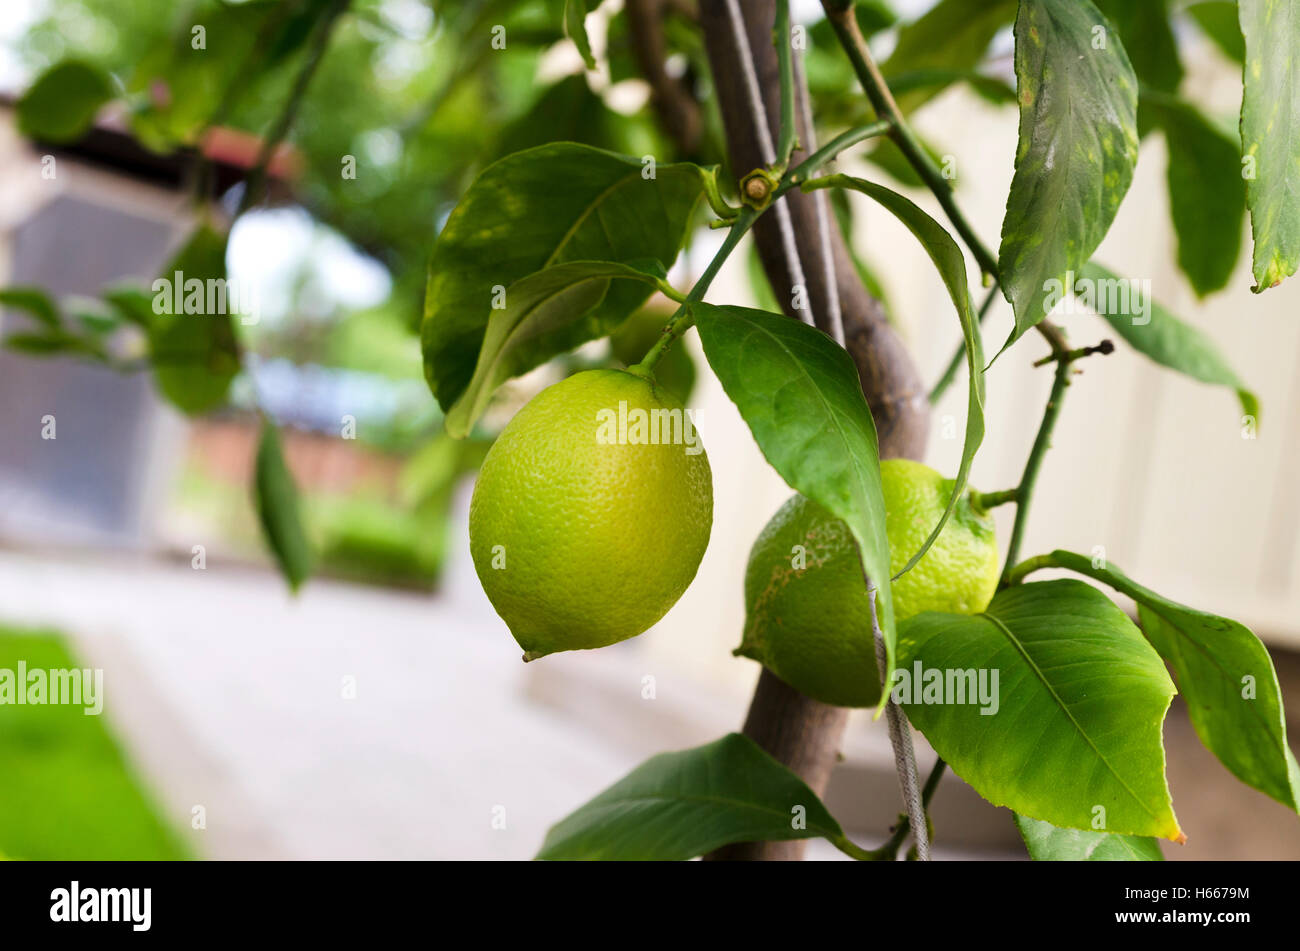 Lemon tree in a backyard - Stock Image